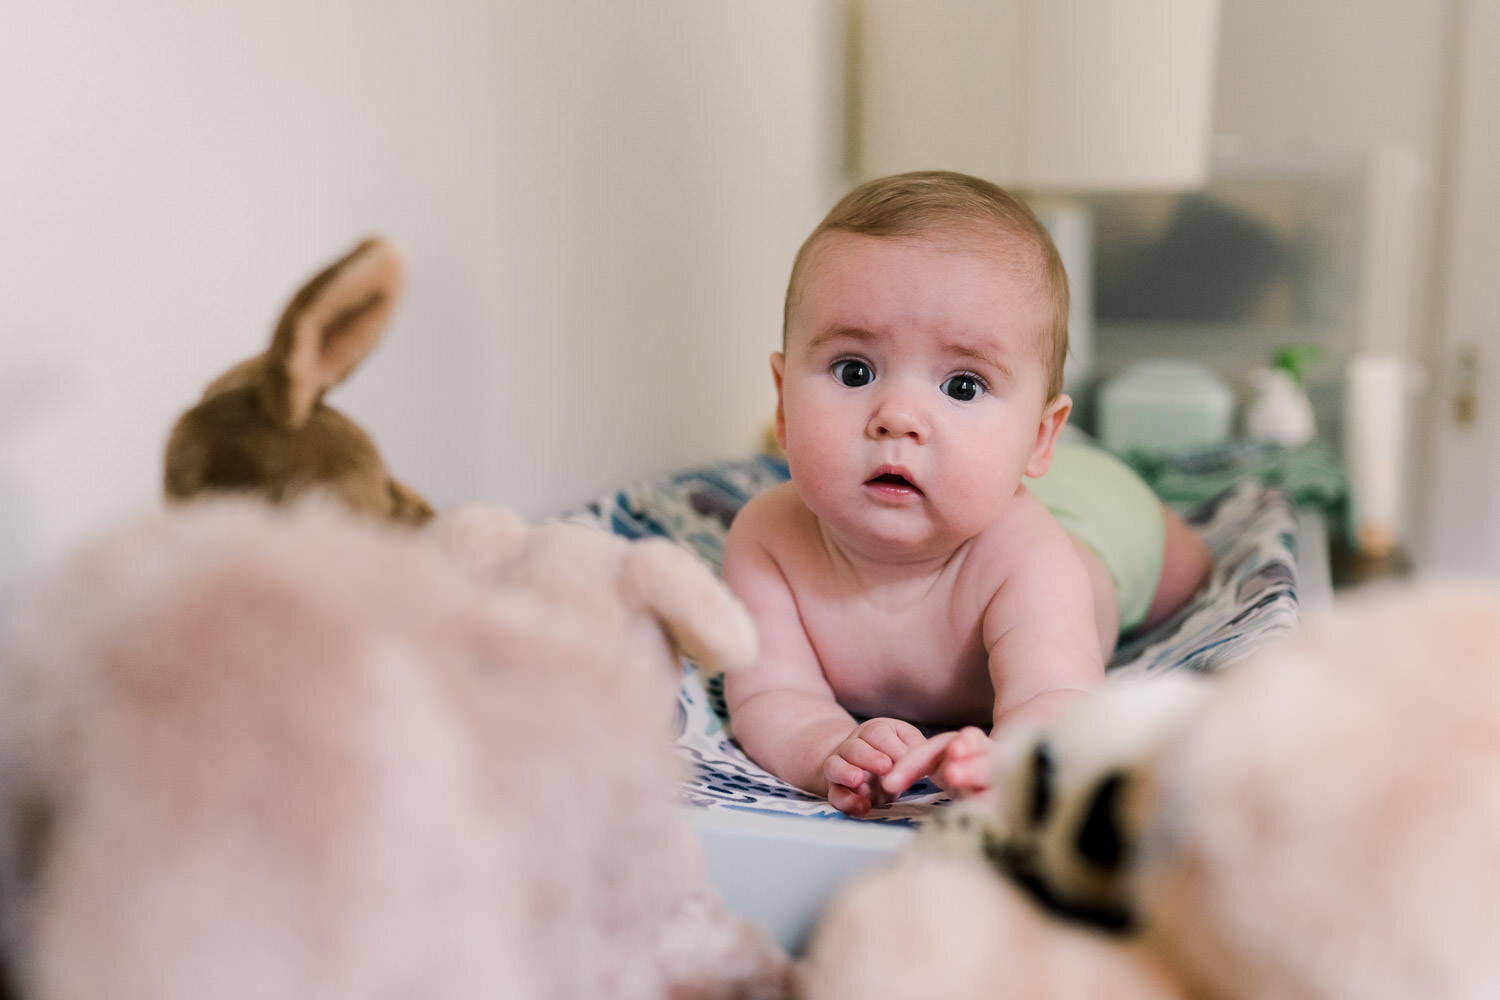 A baby lies on the changing table.